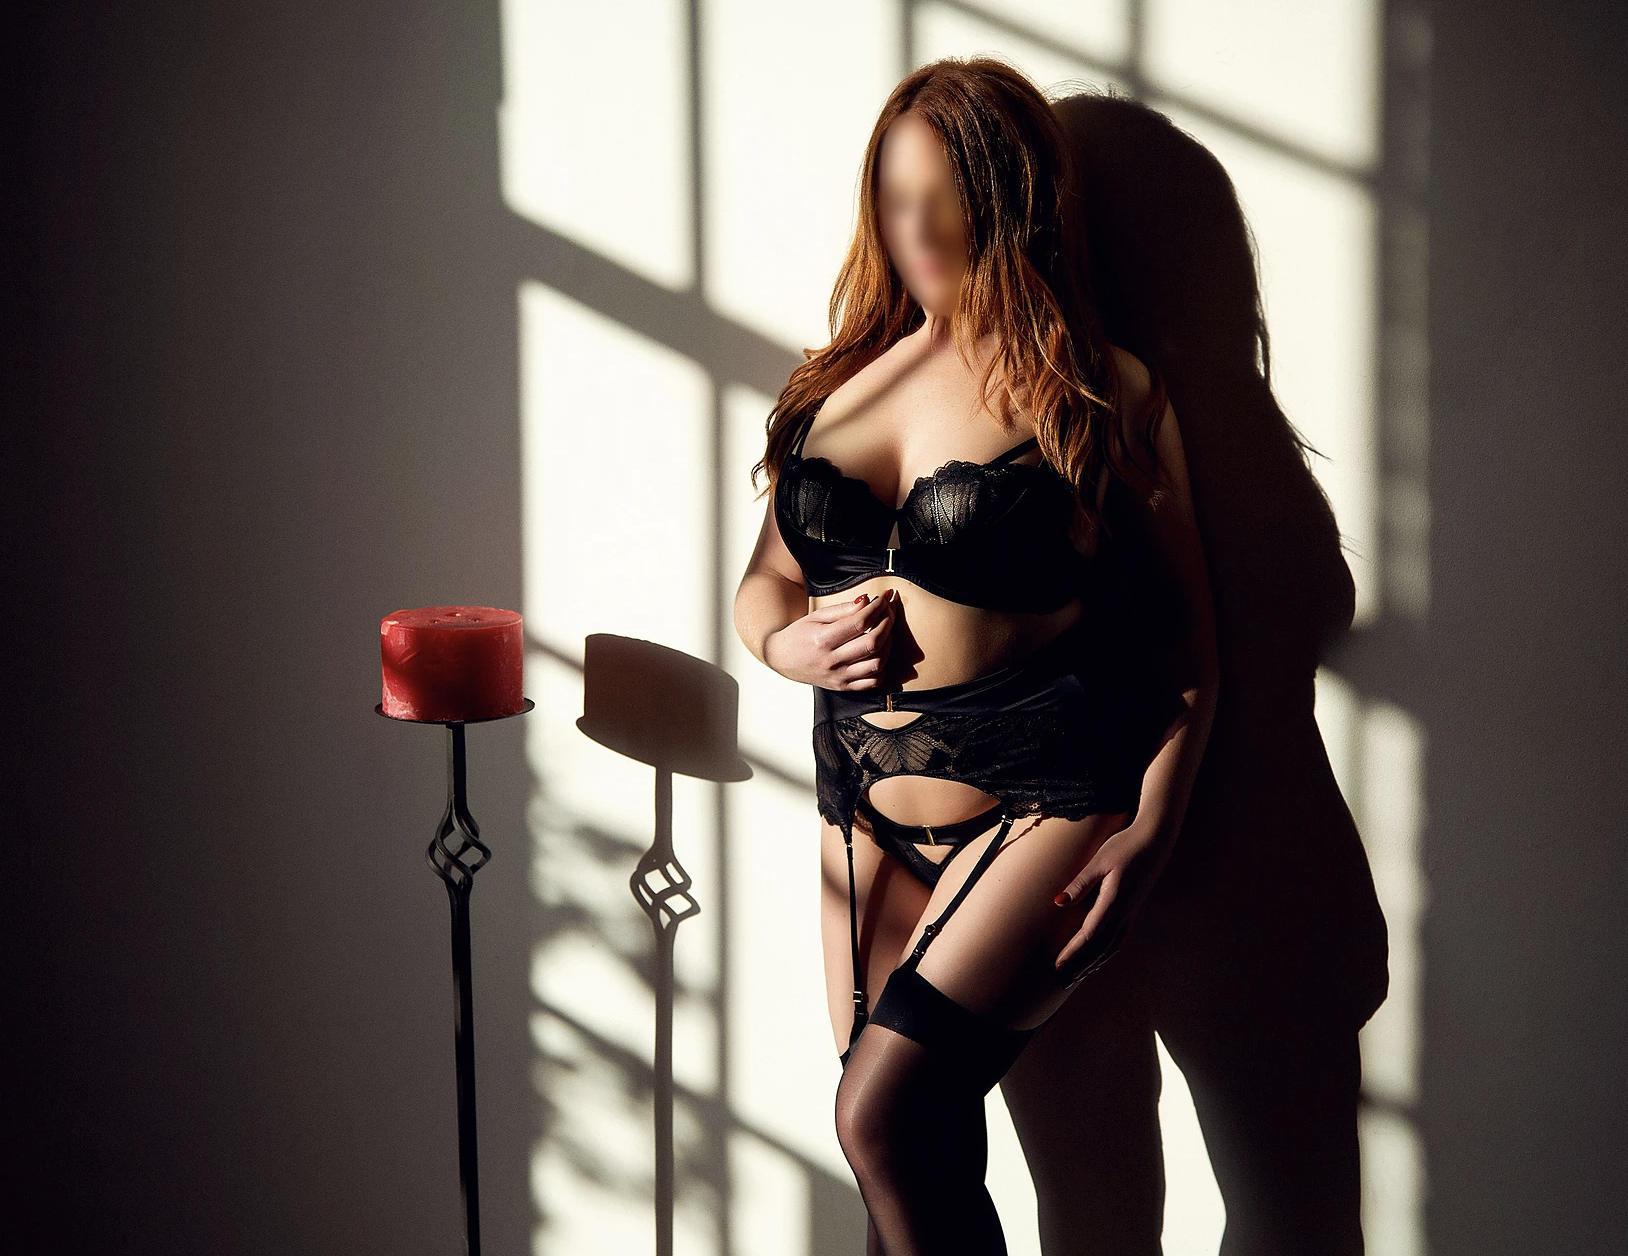 Imogen Mae - An exquisite redhead based in the South West, Imogen is a sensual minx always ready to explore.